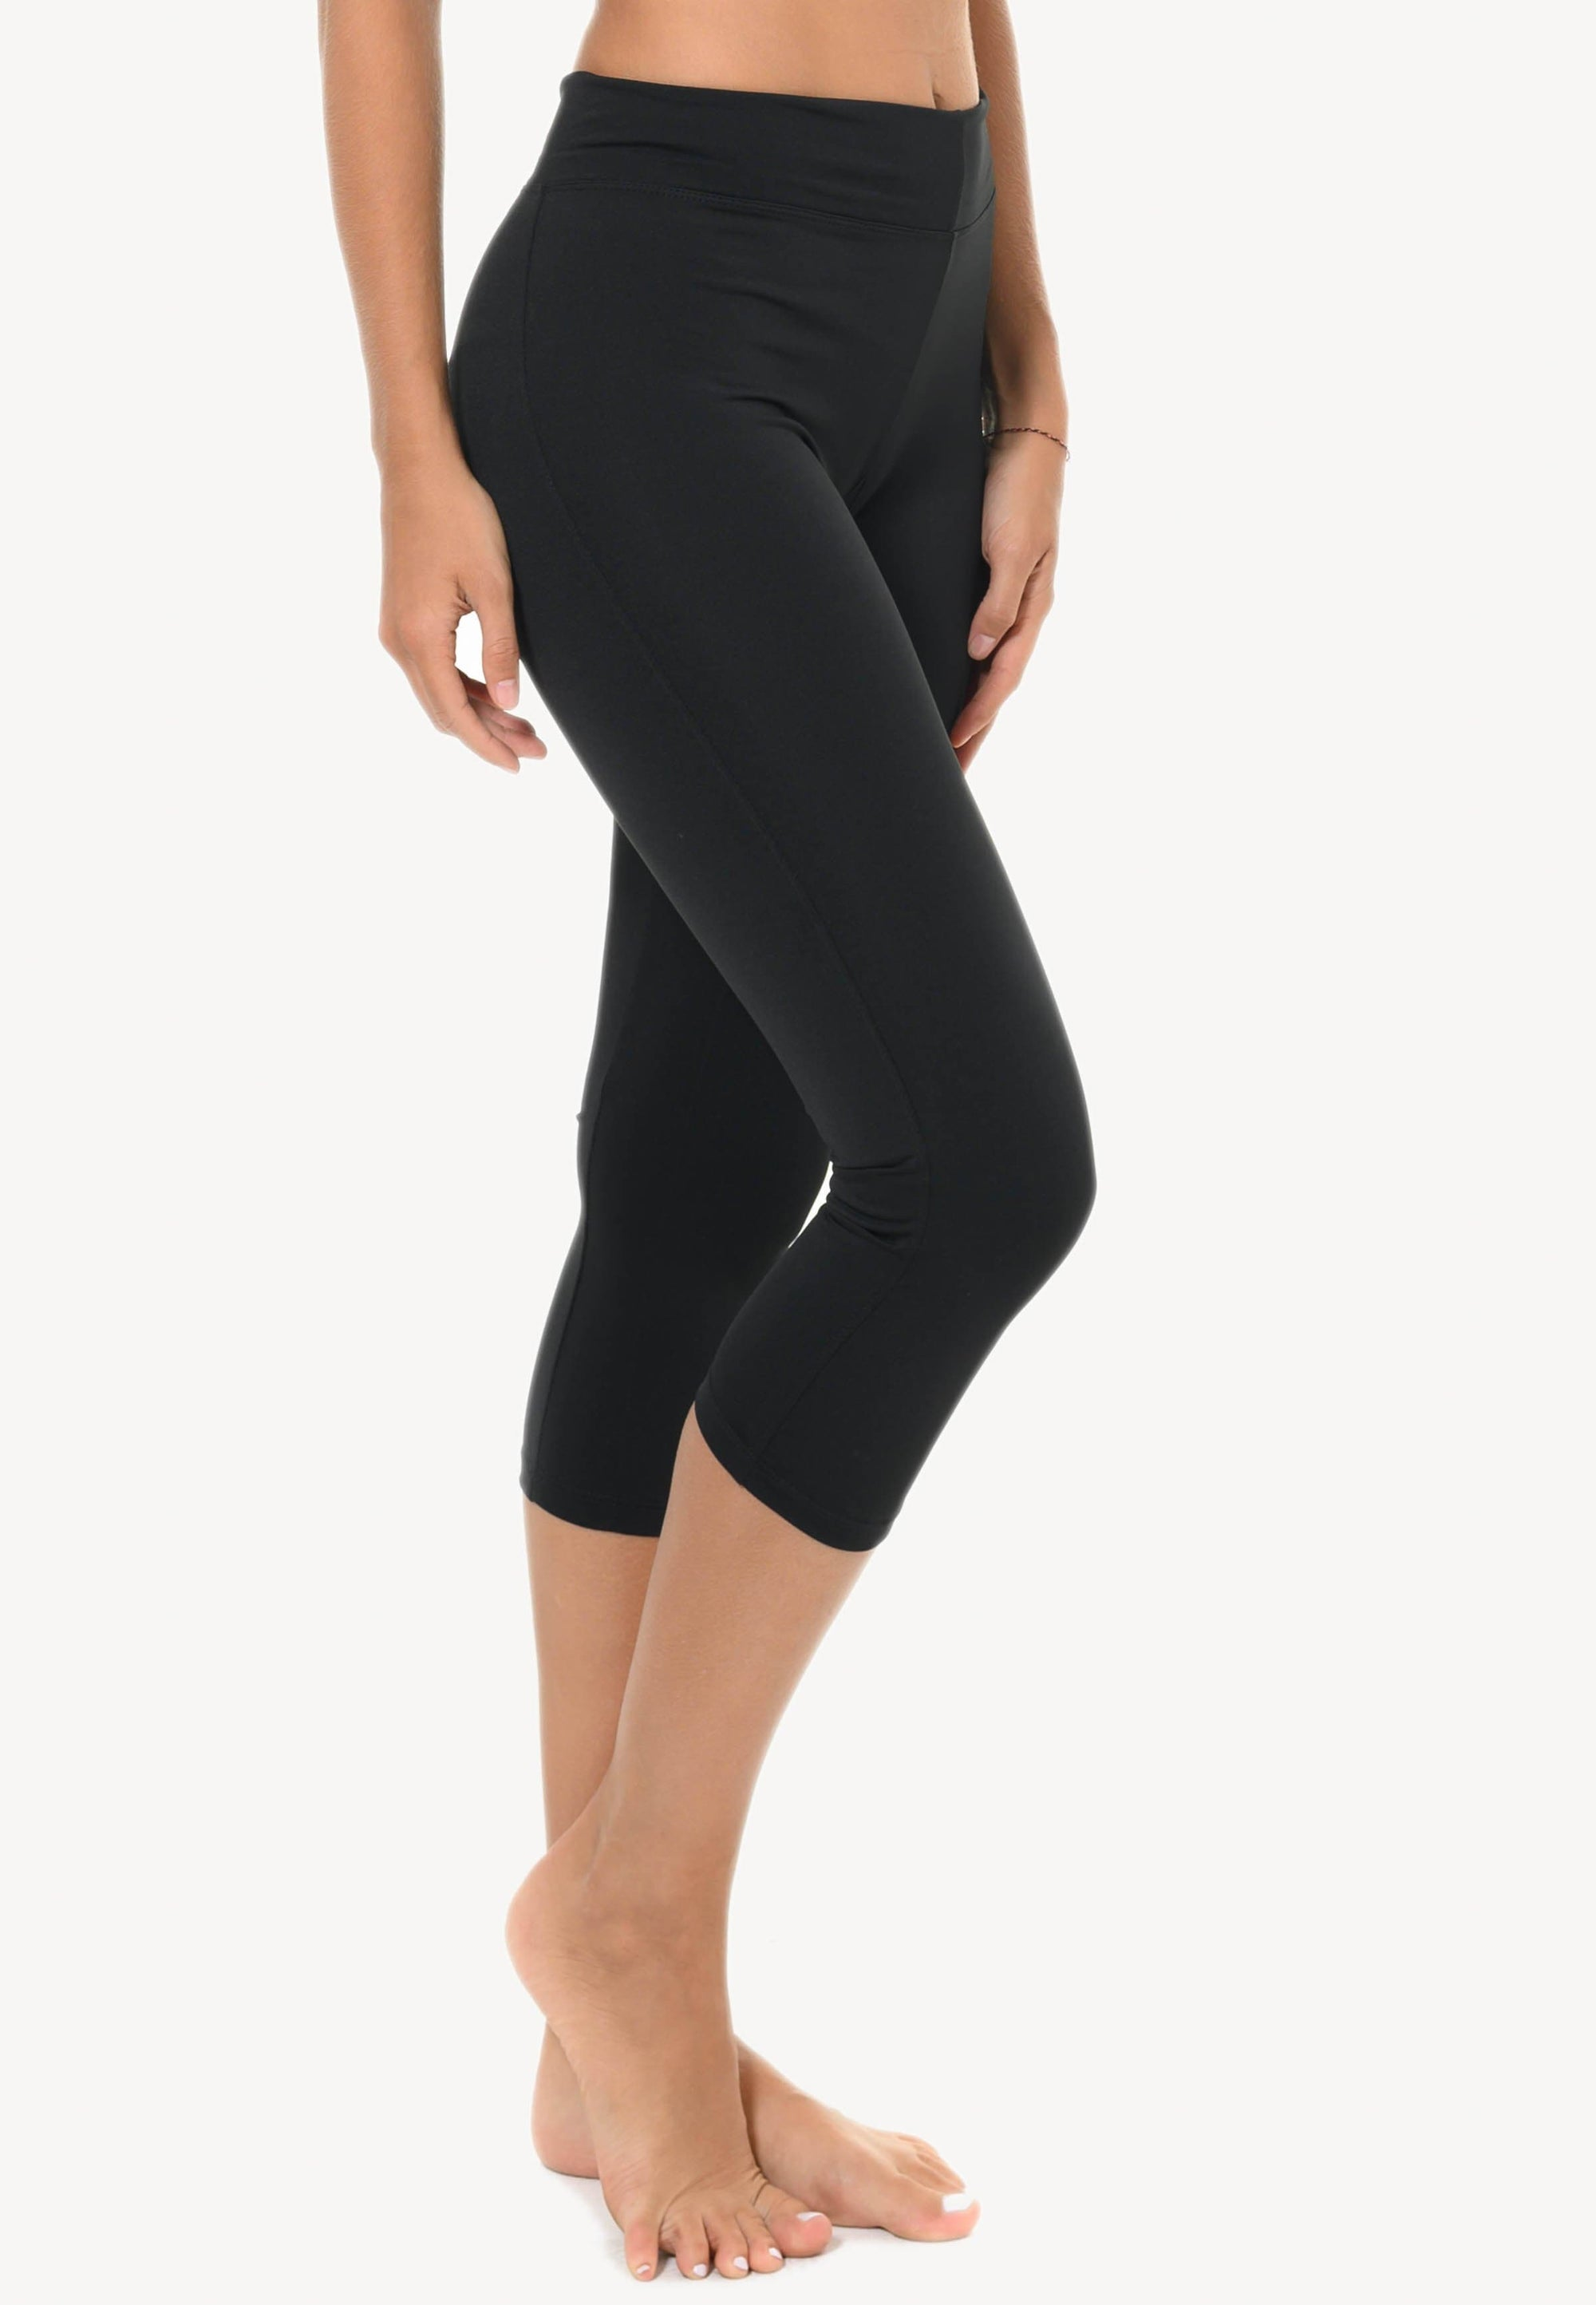 Basic Capris in Black with Back Trim (S - 2XL)